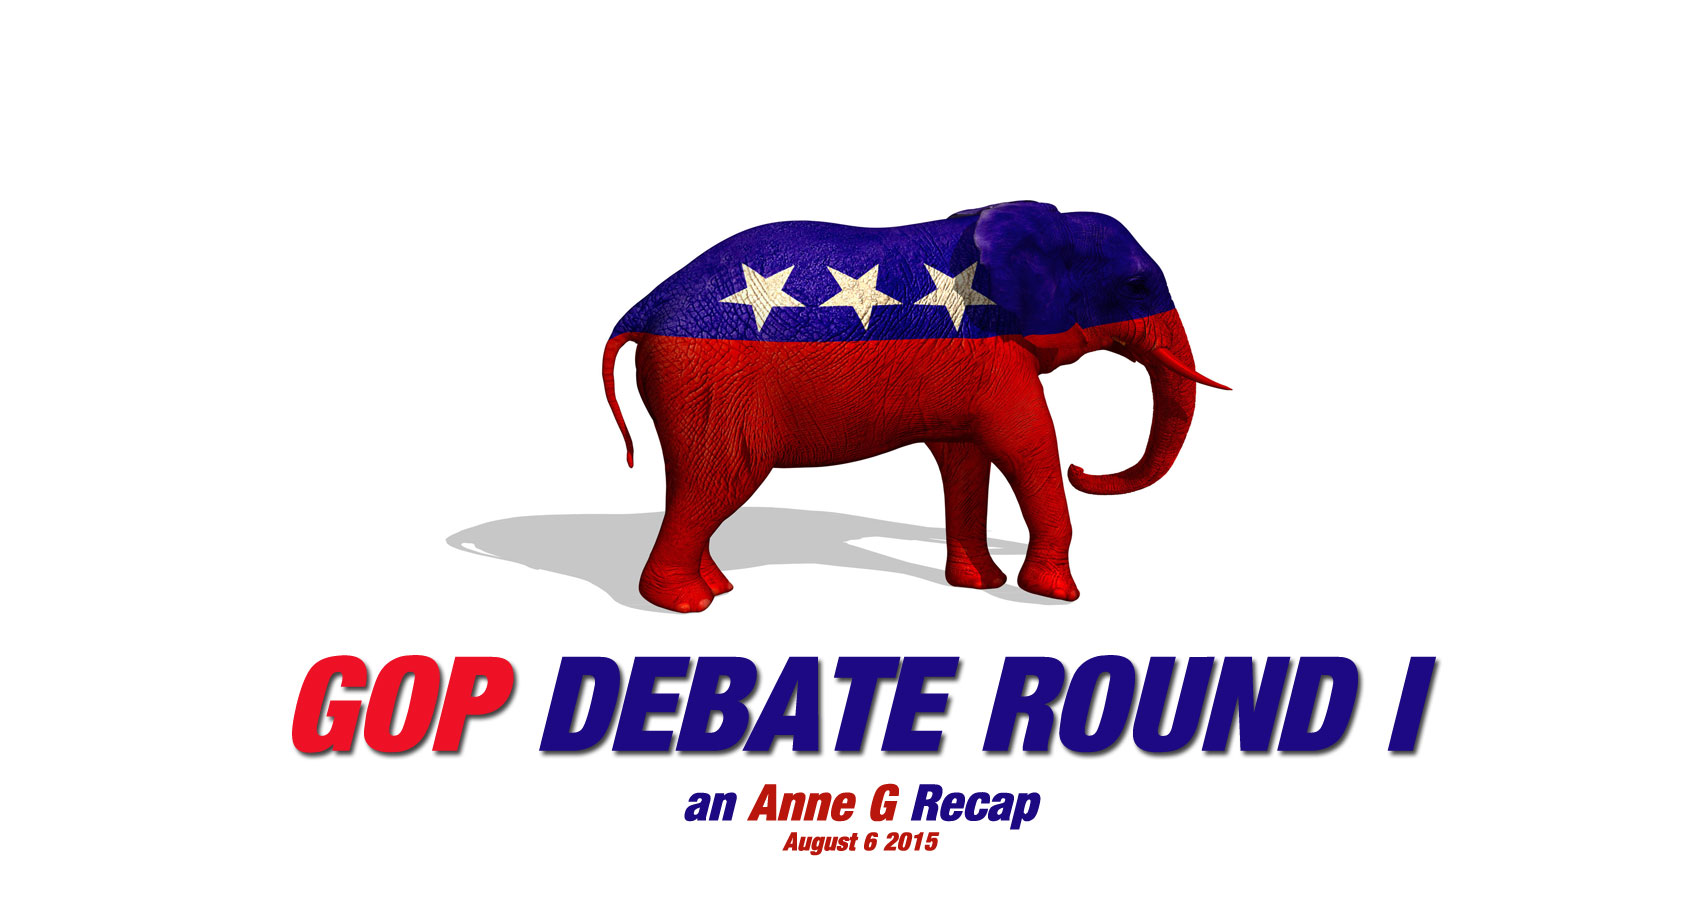 Gop Debate Round I at spillwords.com by Anne G